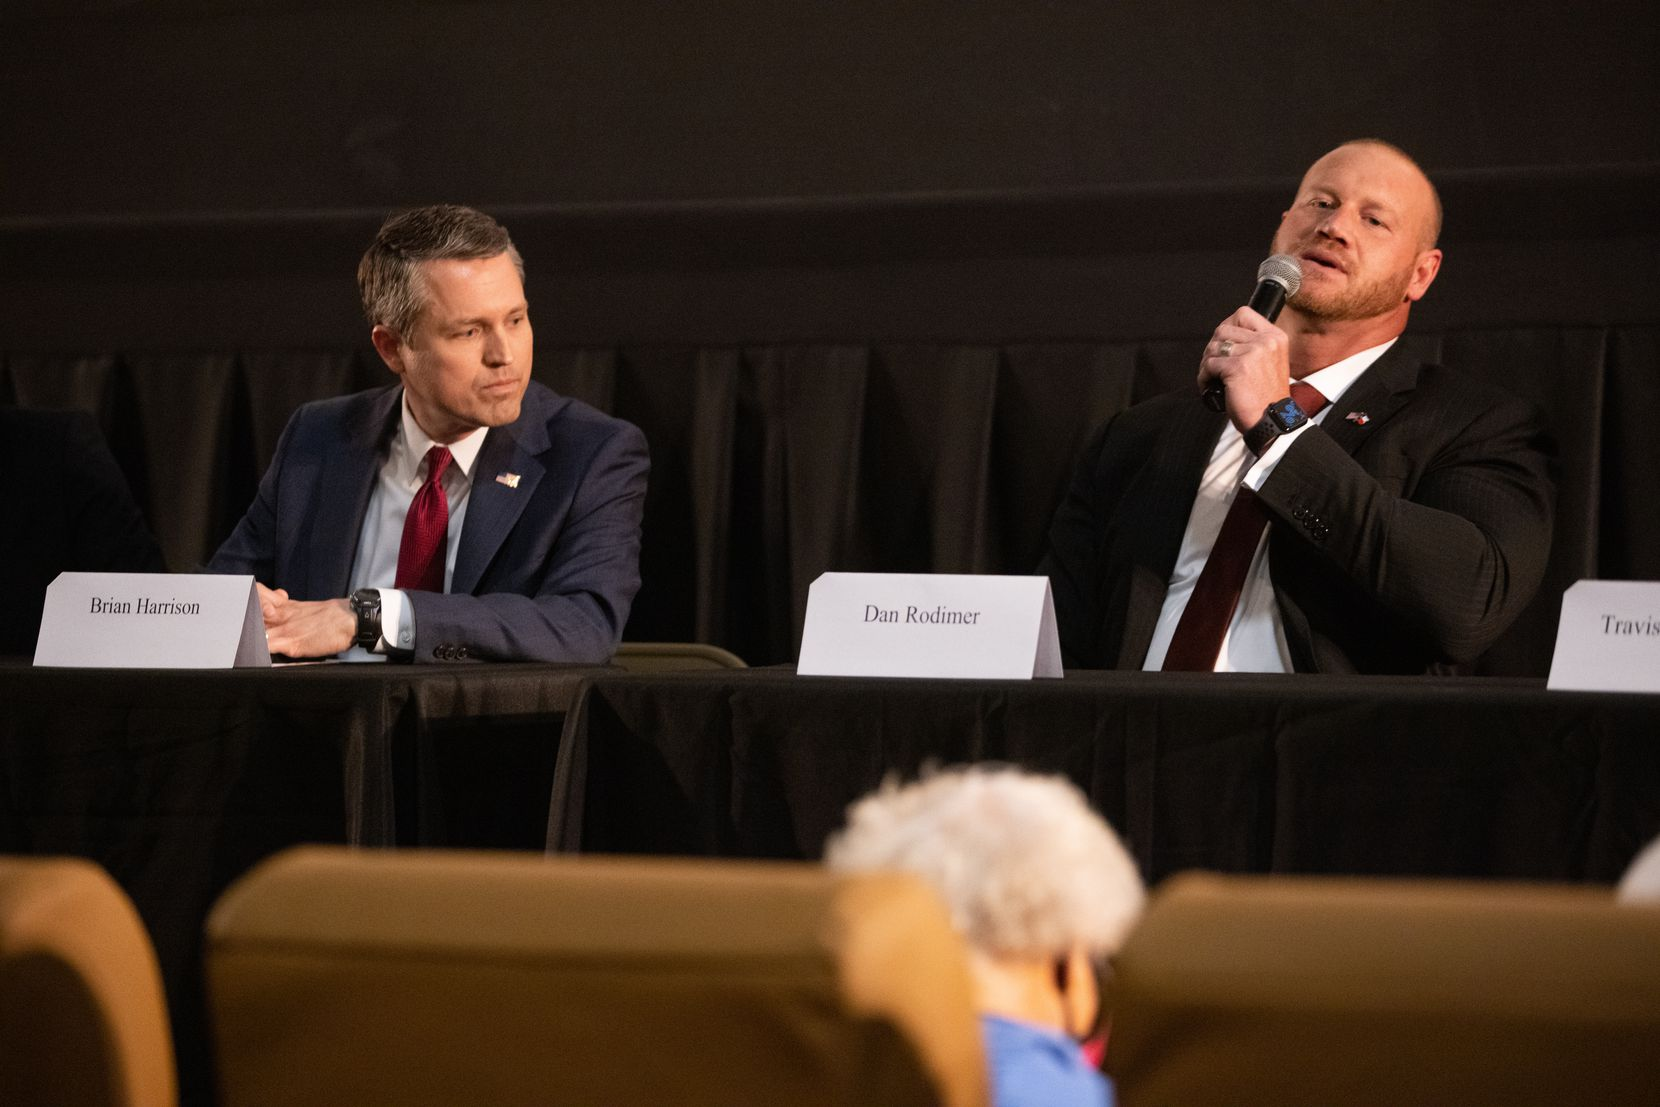 Brian Harrison (left) listened as Dan Rodimer answered questions during a forum for Republican candidates running in the 6th Congressional District of Texas race in Arlington on Wednesday, March 31, 2021. (Juan Figueroa/ The Dallas Morning News)